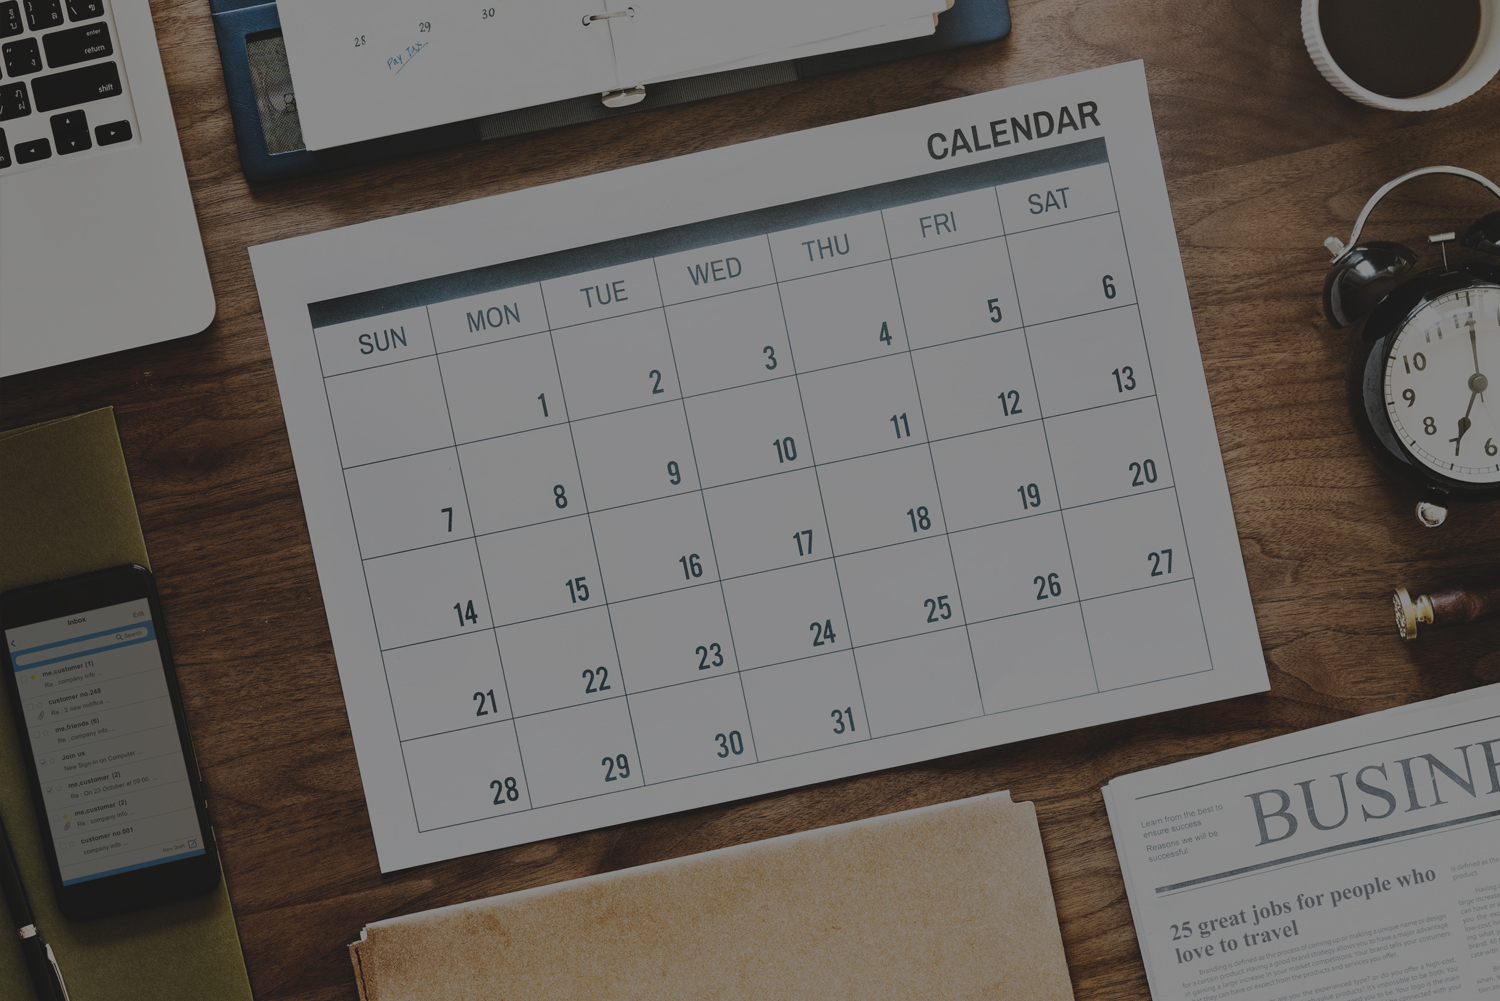 Events - Our StartUp Community events.